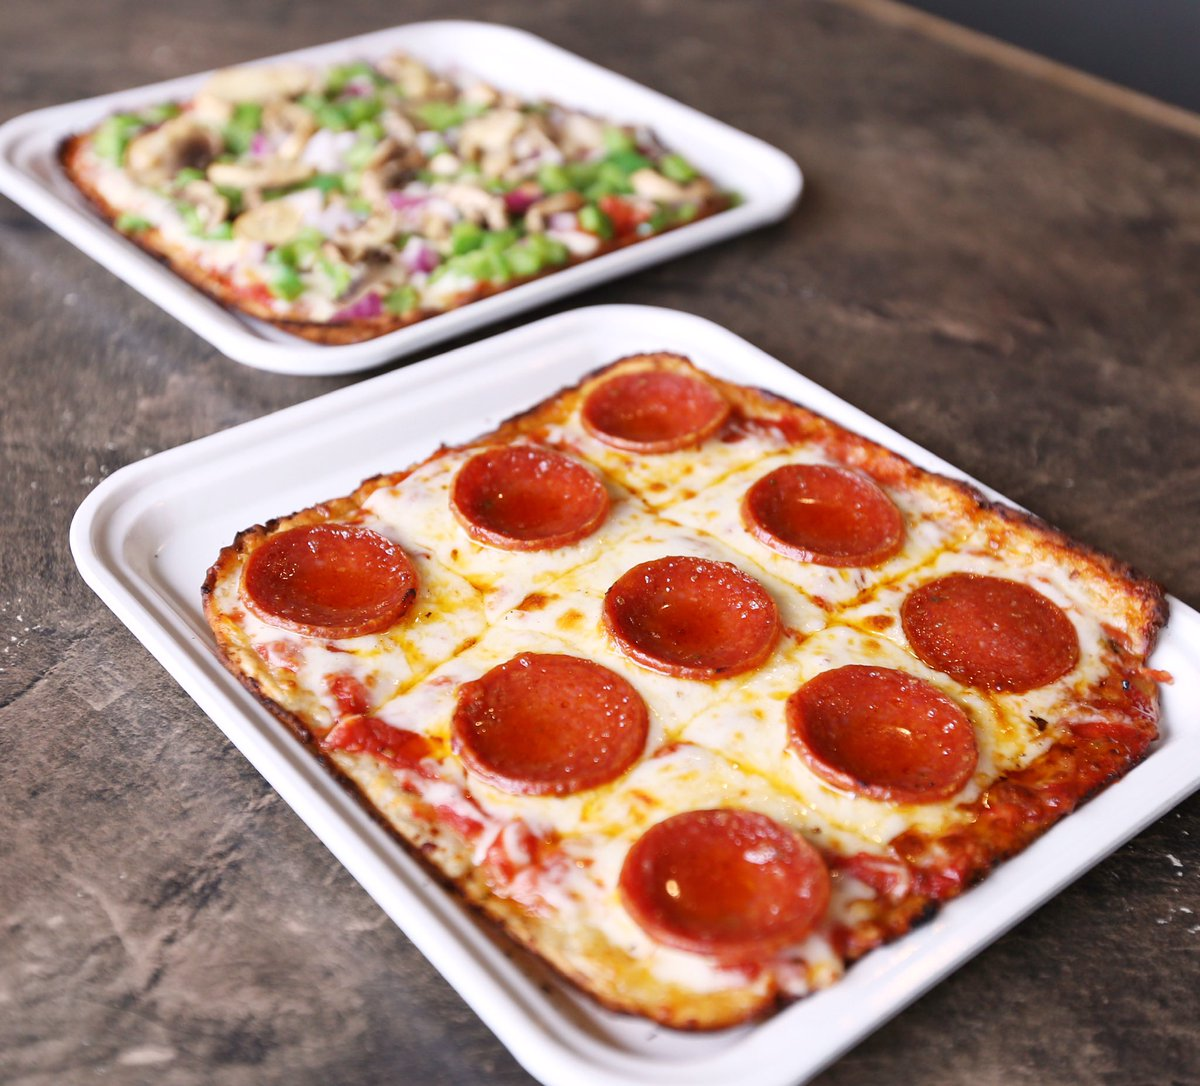 NEW Cauliflower Crust GIVEAWAY   WE ARE GIVING AWAY (2)  $25 #LEDOPIZZA GIFT CARD!   RETWEET AND FOLLOW TO BE ENTERED TO WIN!  (2 winners picked randomly at 10pm on 10/18/19) #FridayFeeling  Have you tried our NEW Cauliflower Crust Pizza?  https:// ledopizza.com/food/cauliflow er-crust-pizza/  … <br>http://pic.twitter.com/iFrxskBcvG